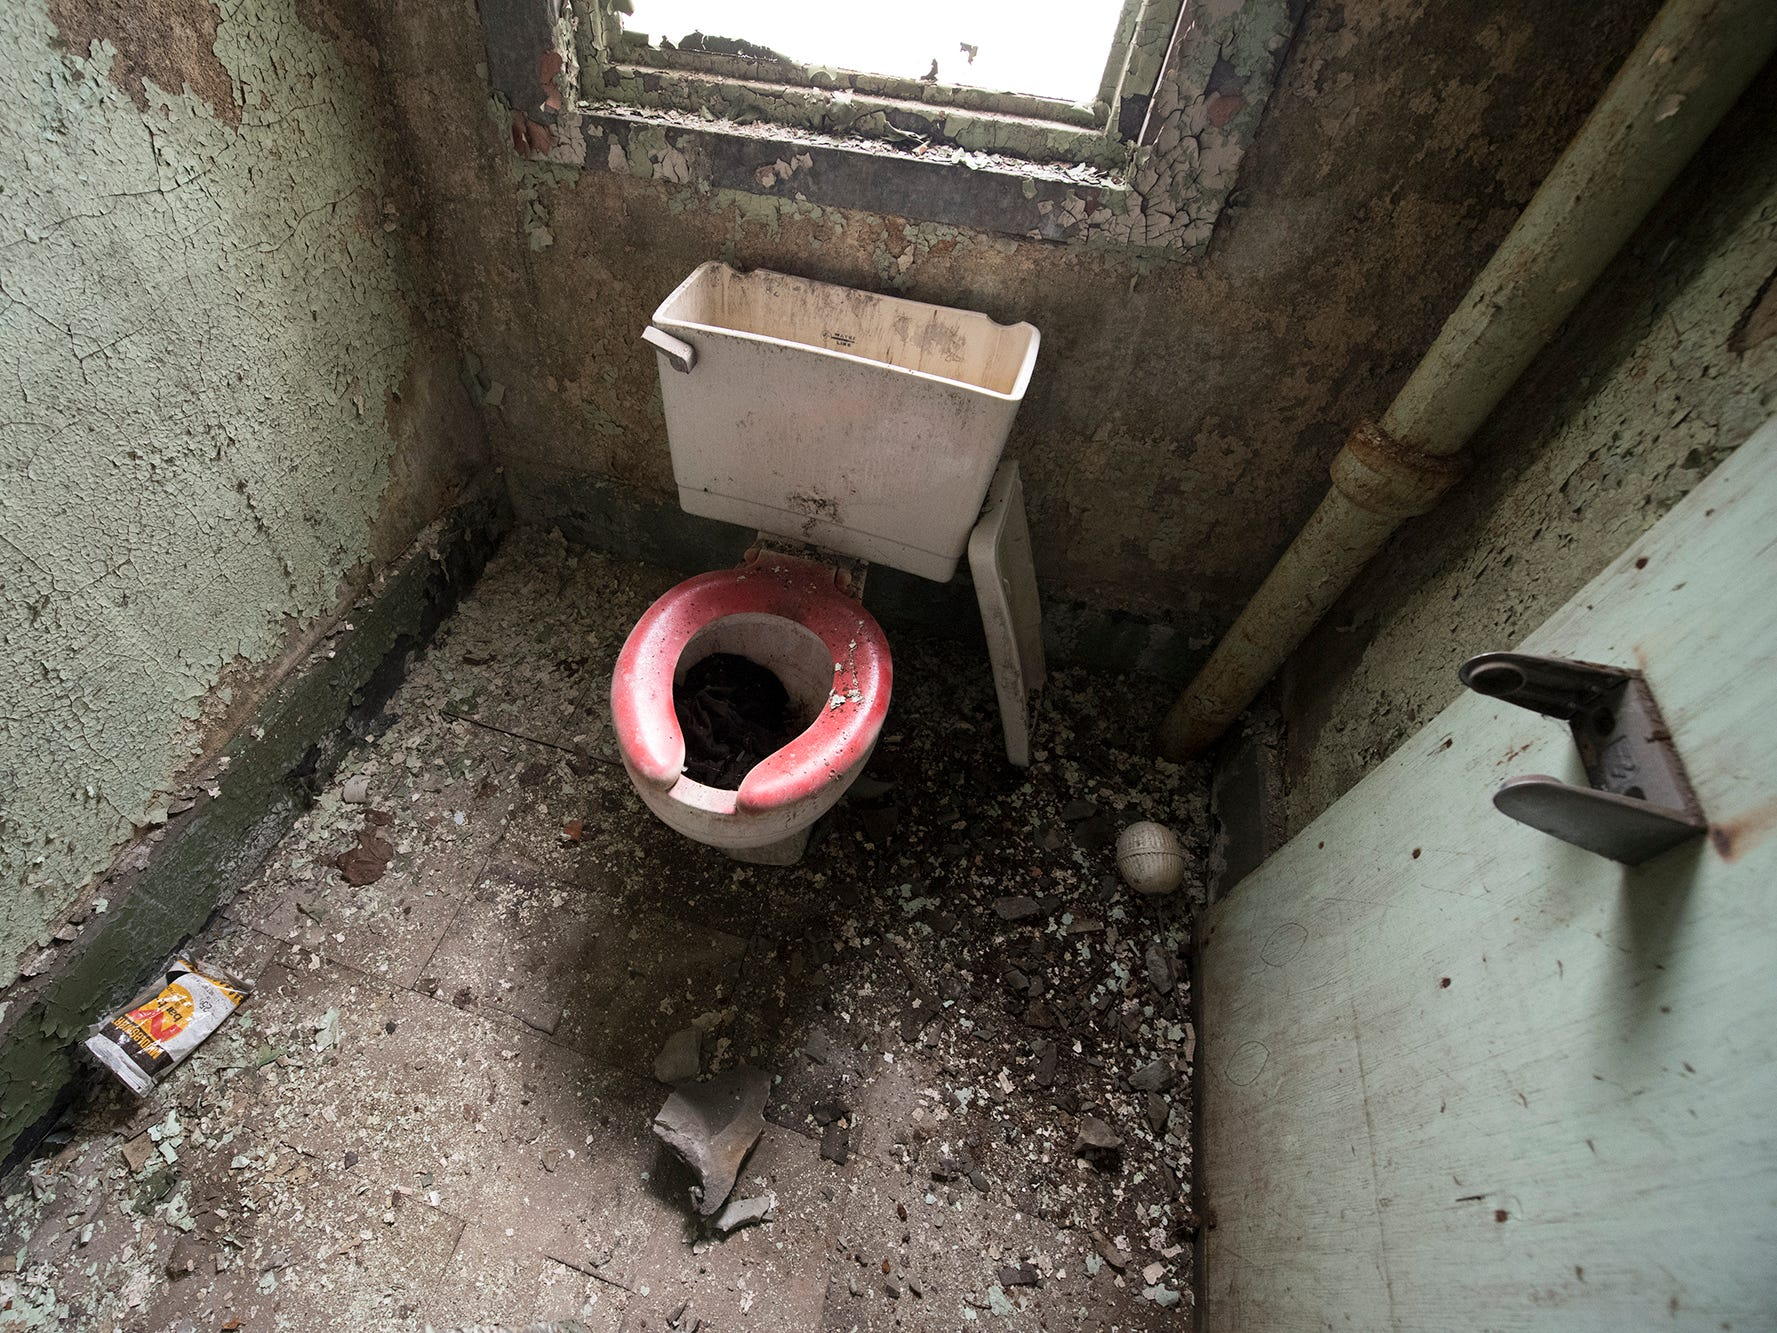 A toilet is subjected to the elements from a broken window inside the old York County Prison.